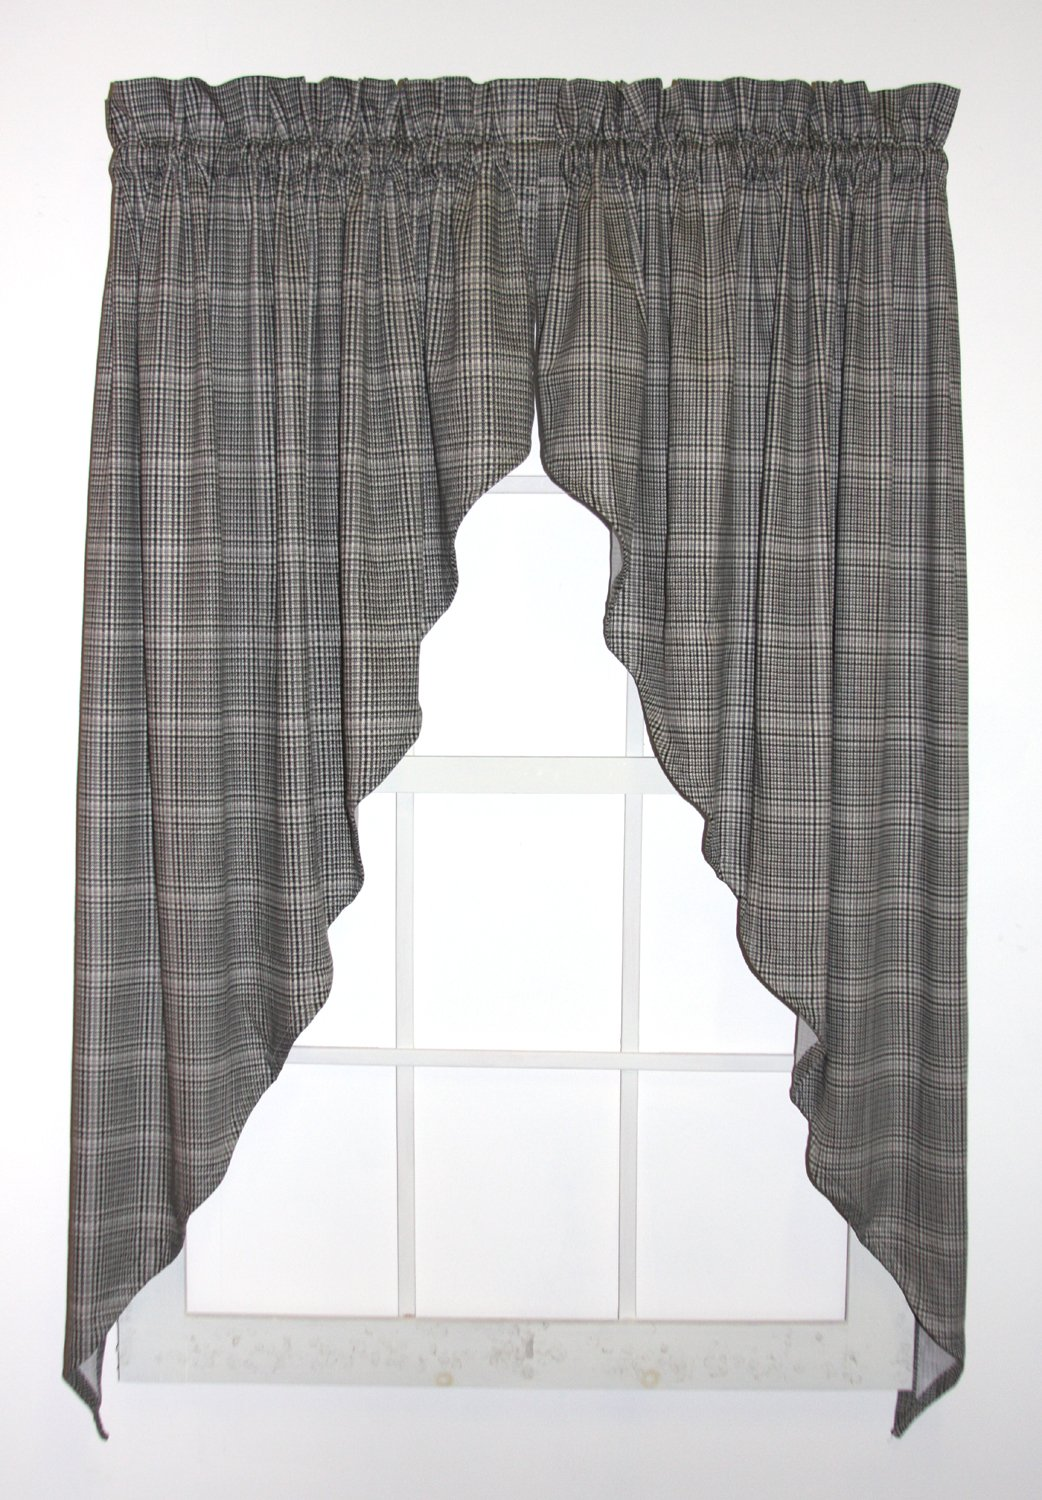 Morrison Plaid Check Print Swags / Jabot Curtains Pair 90-Inch-by-36-Inch, Black Window Toppers